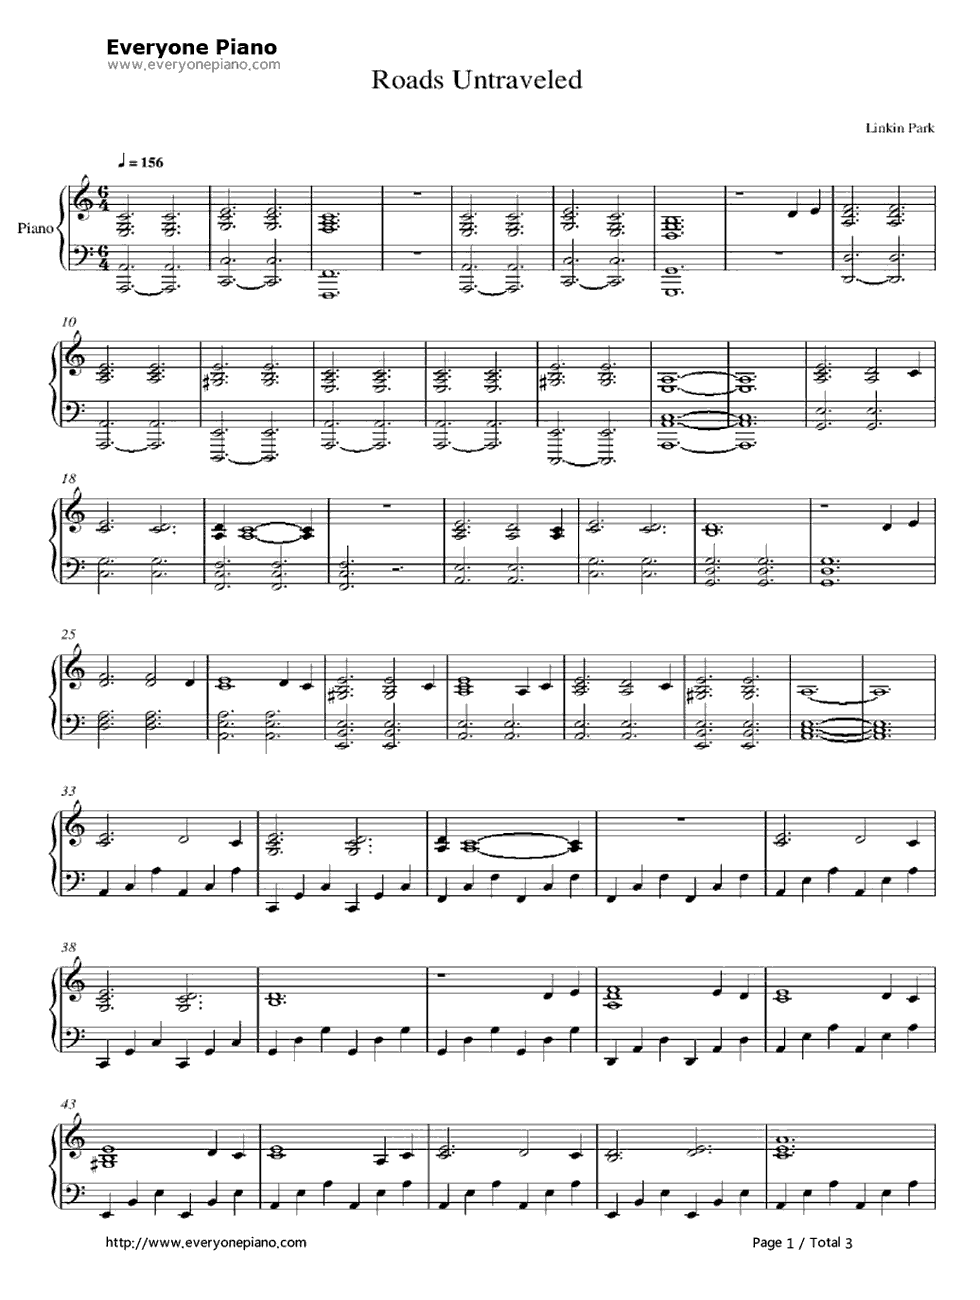 Linkin park roads untraveled sheet music for piano download free.